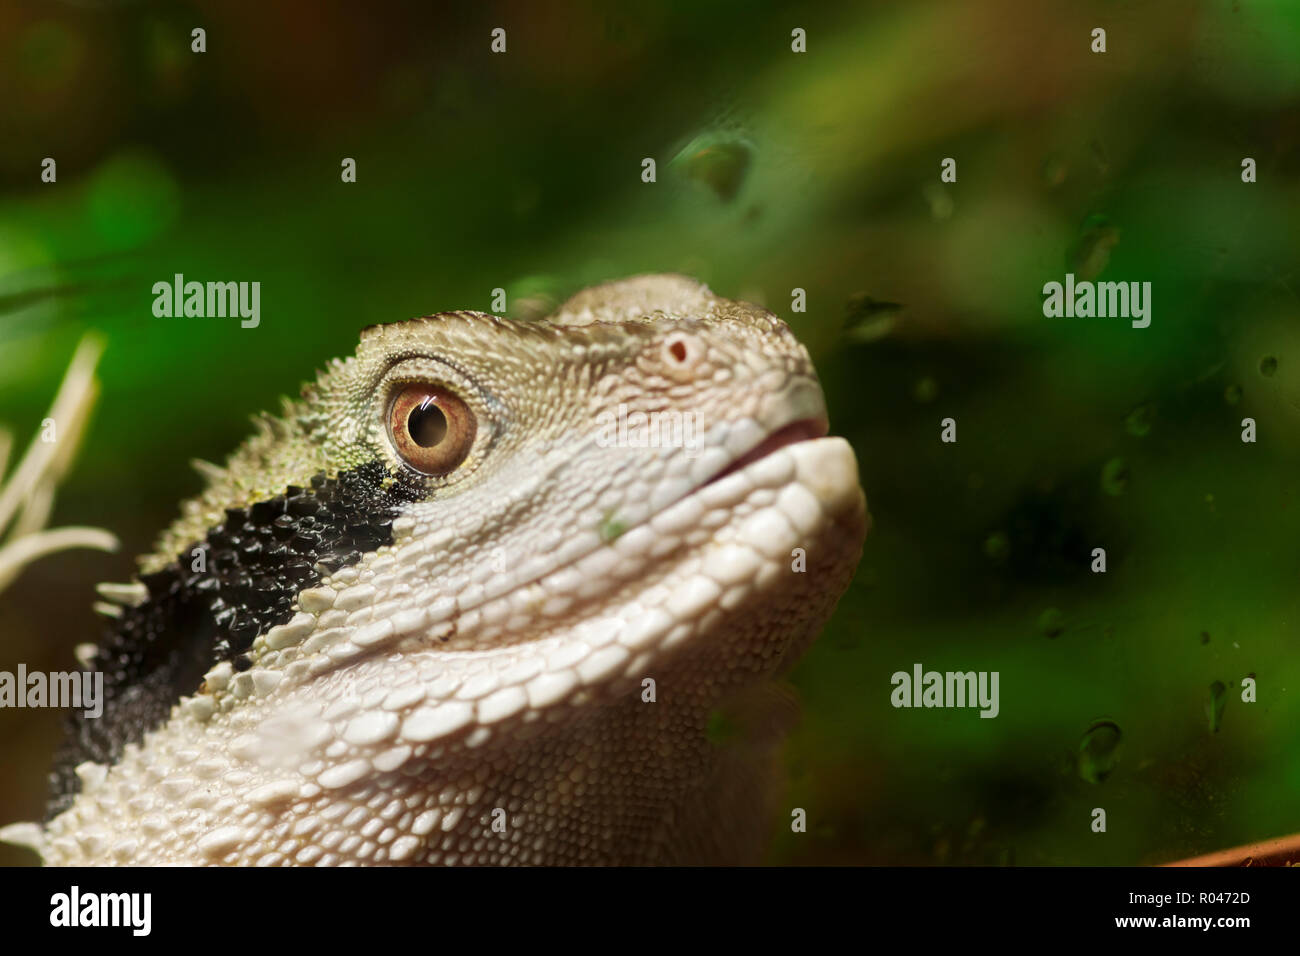 Lateral head portrait of an Australian Water Dragon (lat: Intellagama lesueurii) behind a terrarium glass pane with drops of water. The focus on eye. - Stock Image